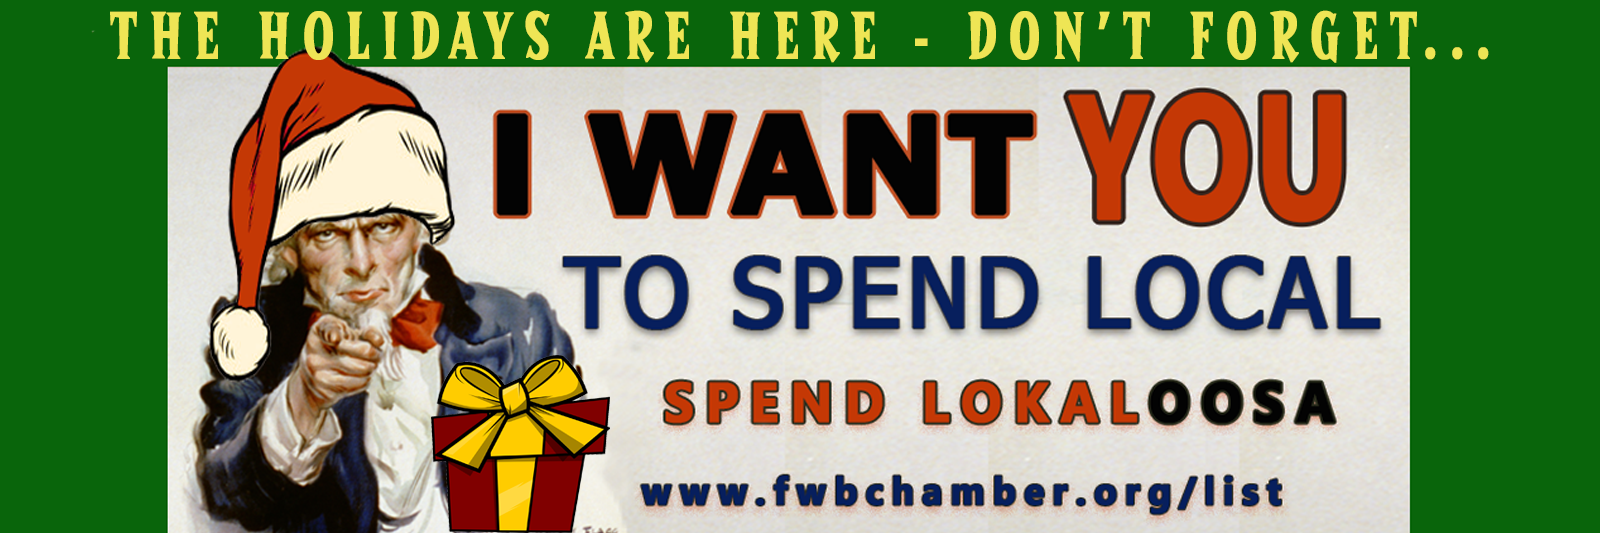 Spend-Lokaloosa-Horiz-Ad-Xmas-Ad-for-website.png